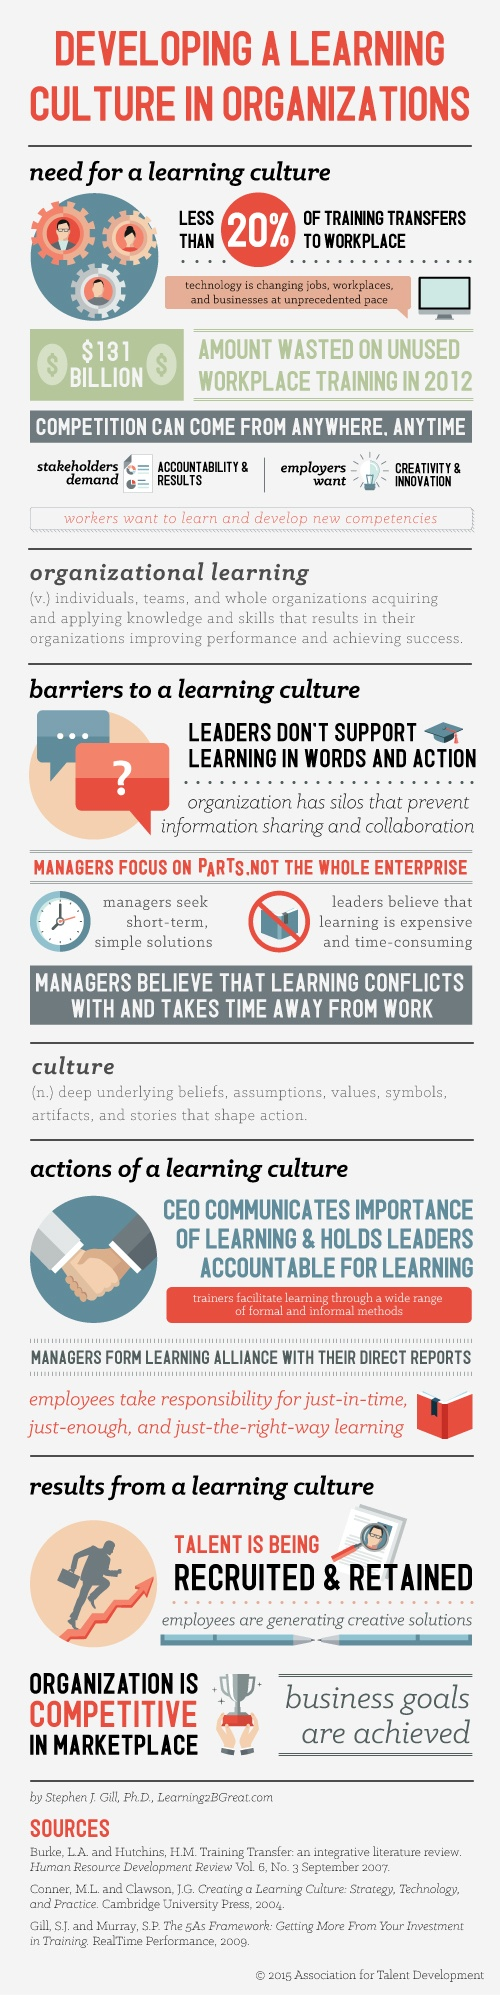 Developing a Learning Culture in Organizations Infographic